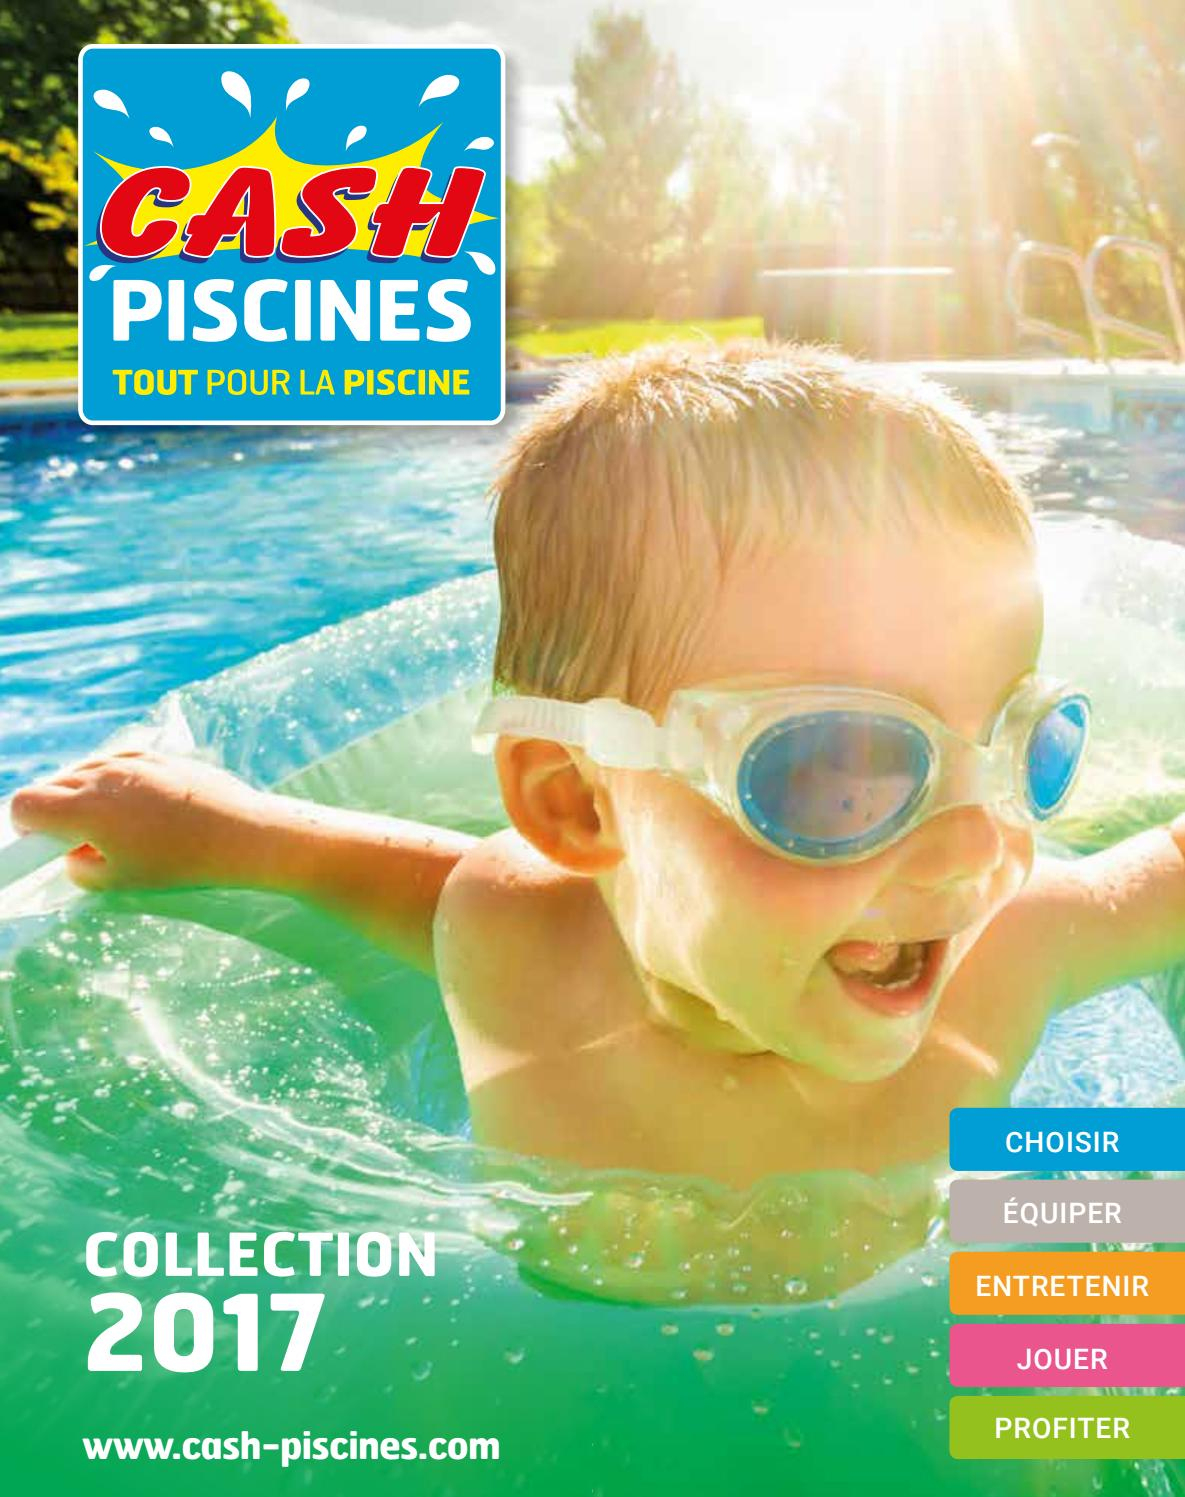 Catalogue Cash Piscine 2017 By Octave Octave - Issuu intérieur Cash Piscine Bourgoin